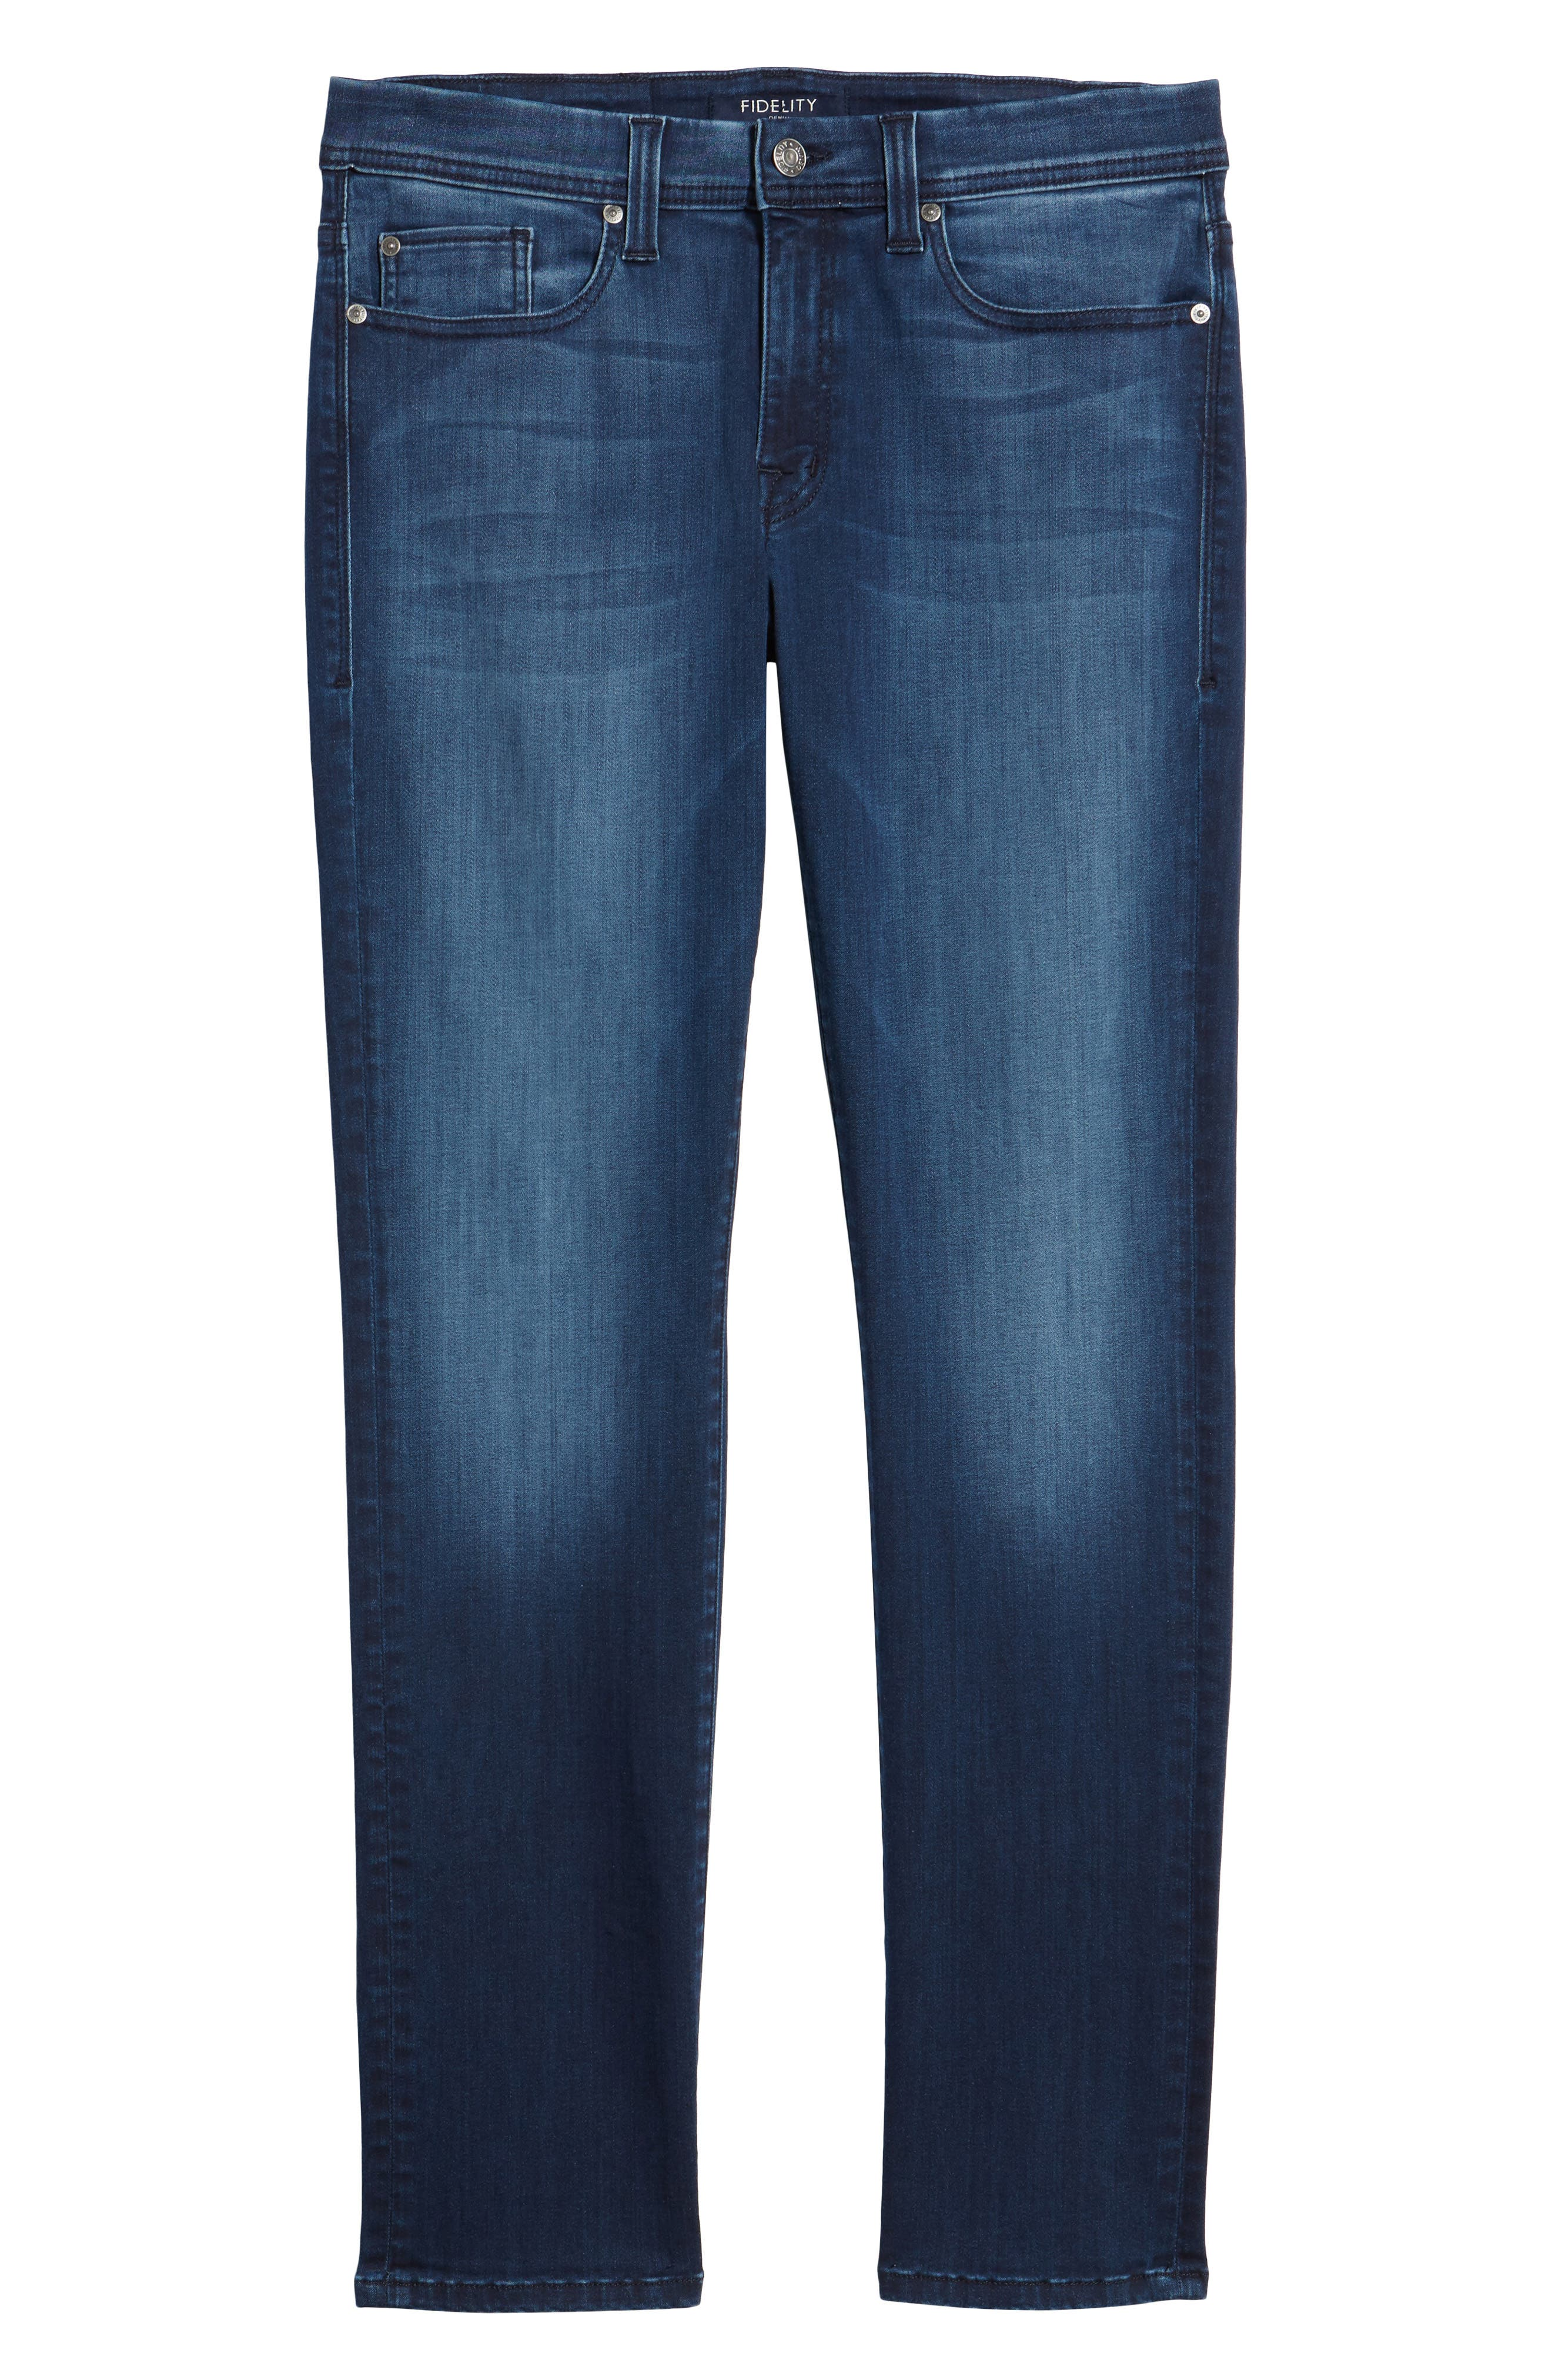 Jimmy Slim Straight Leg Jeans,                             Alternate thumbnail 6, color,                             400